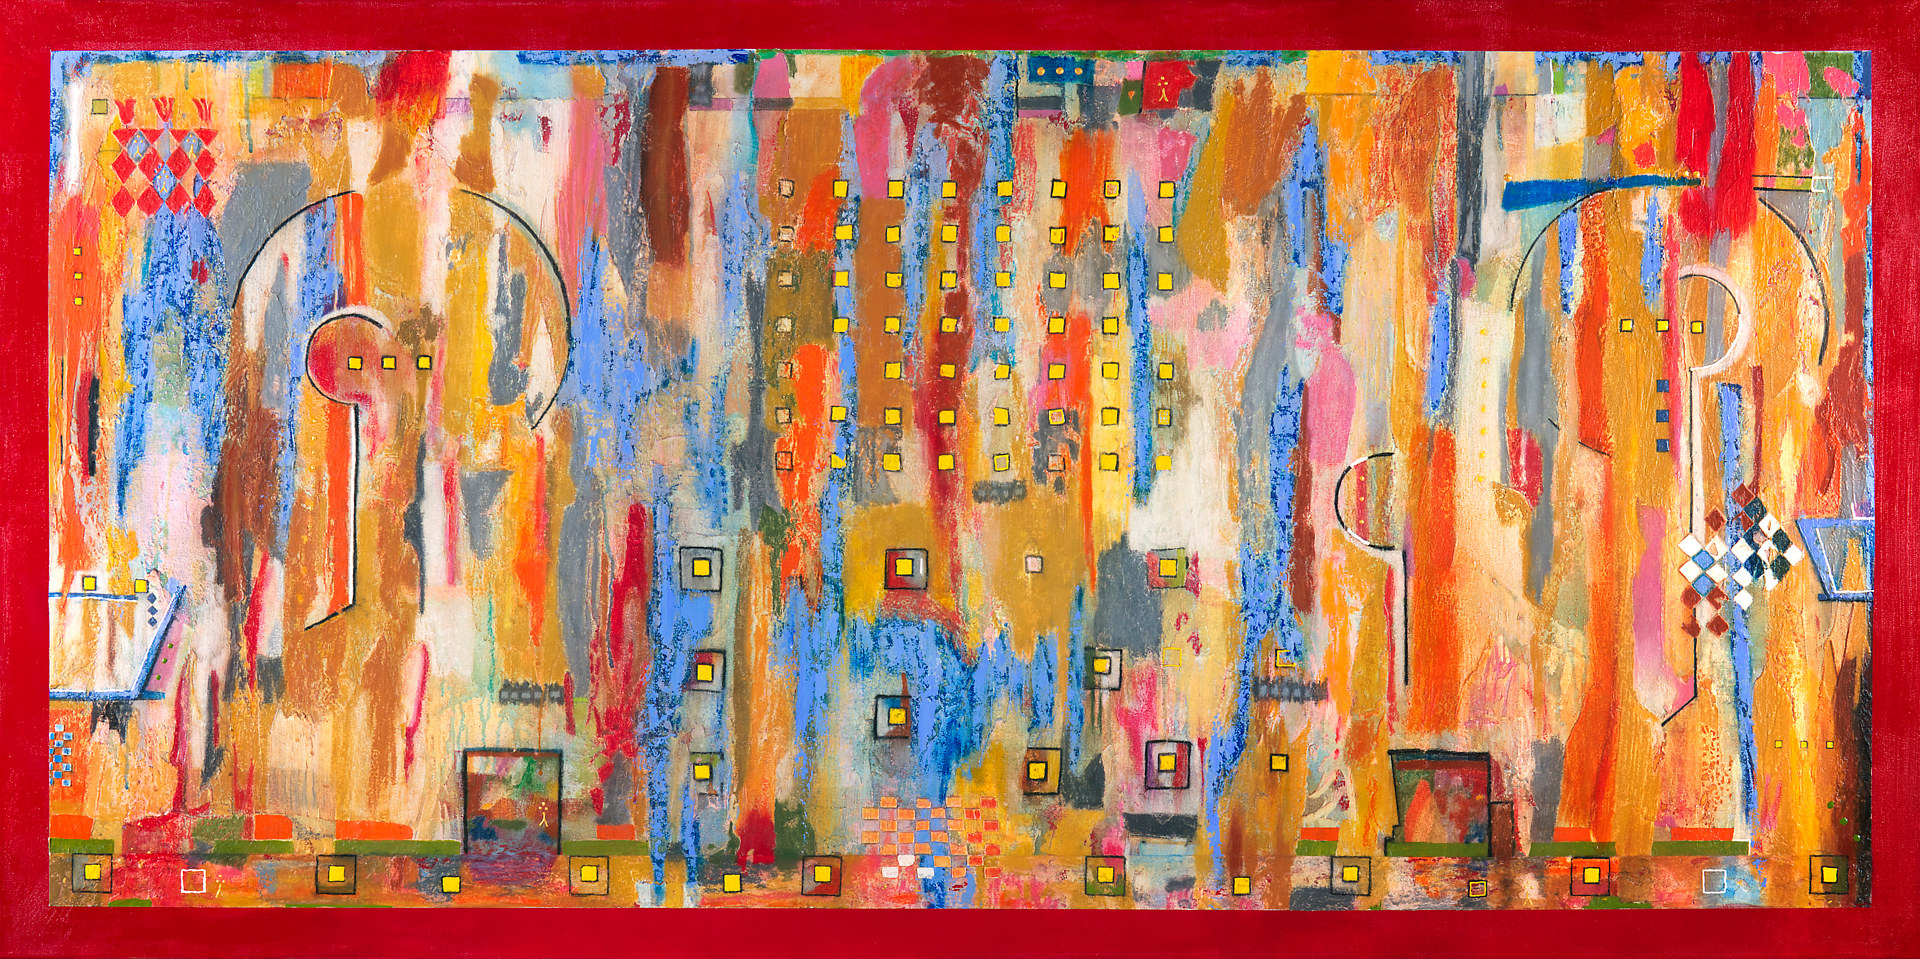 Acrylic painting Jukebox Eight   36x72  $4800.00 by Edward Bock